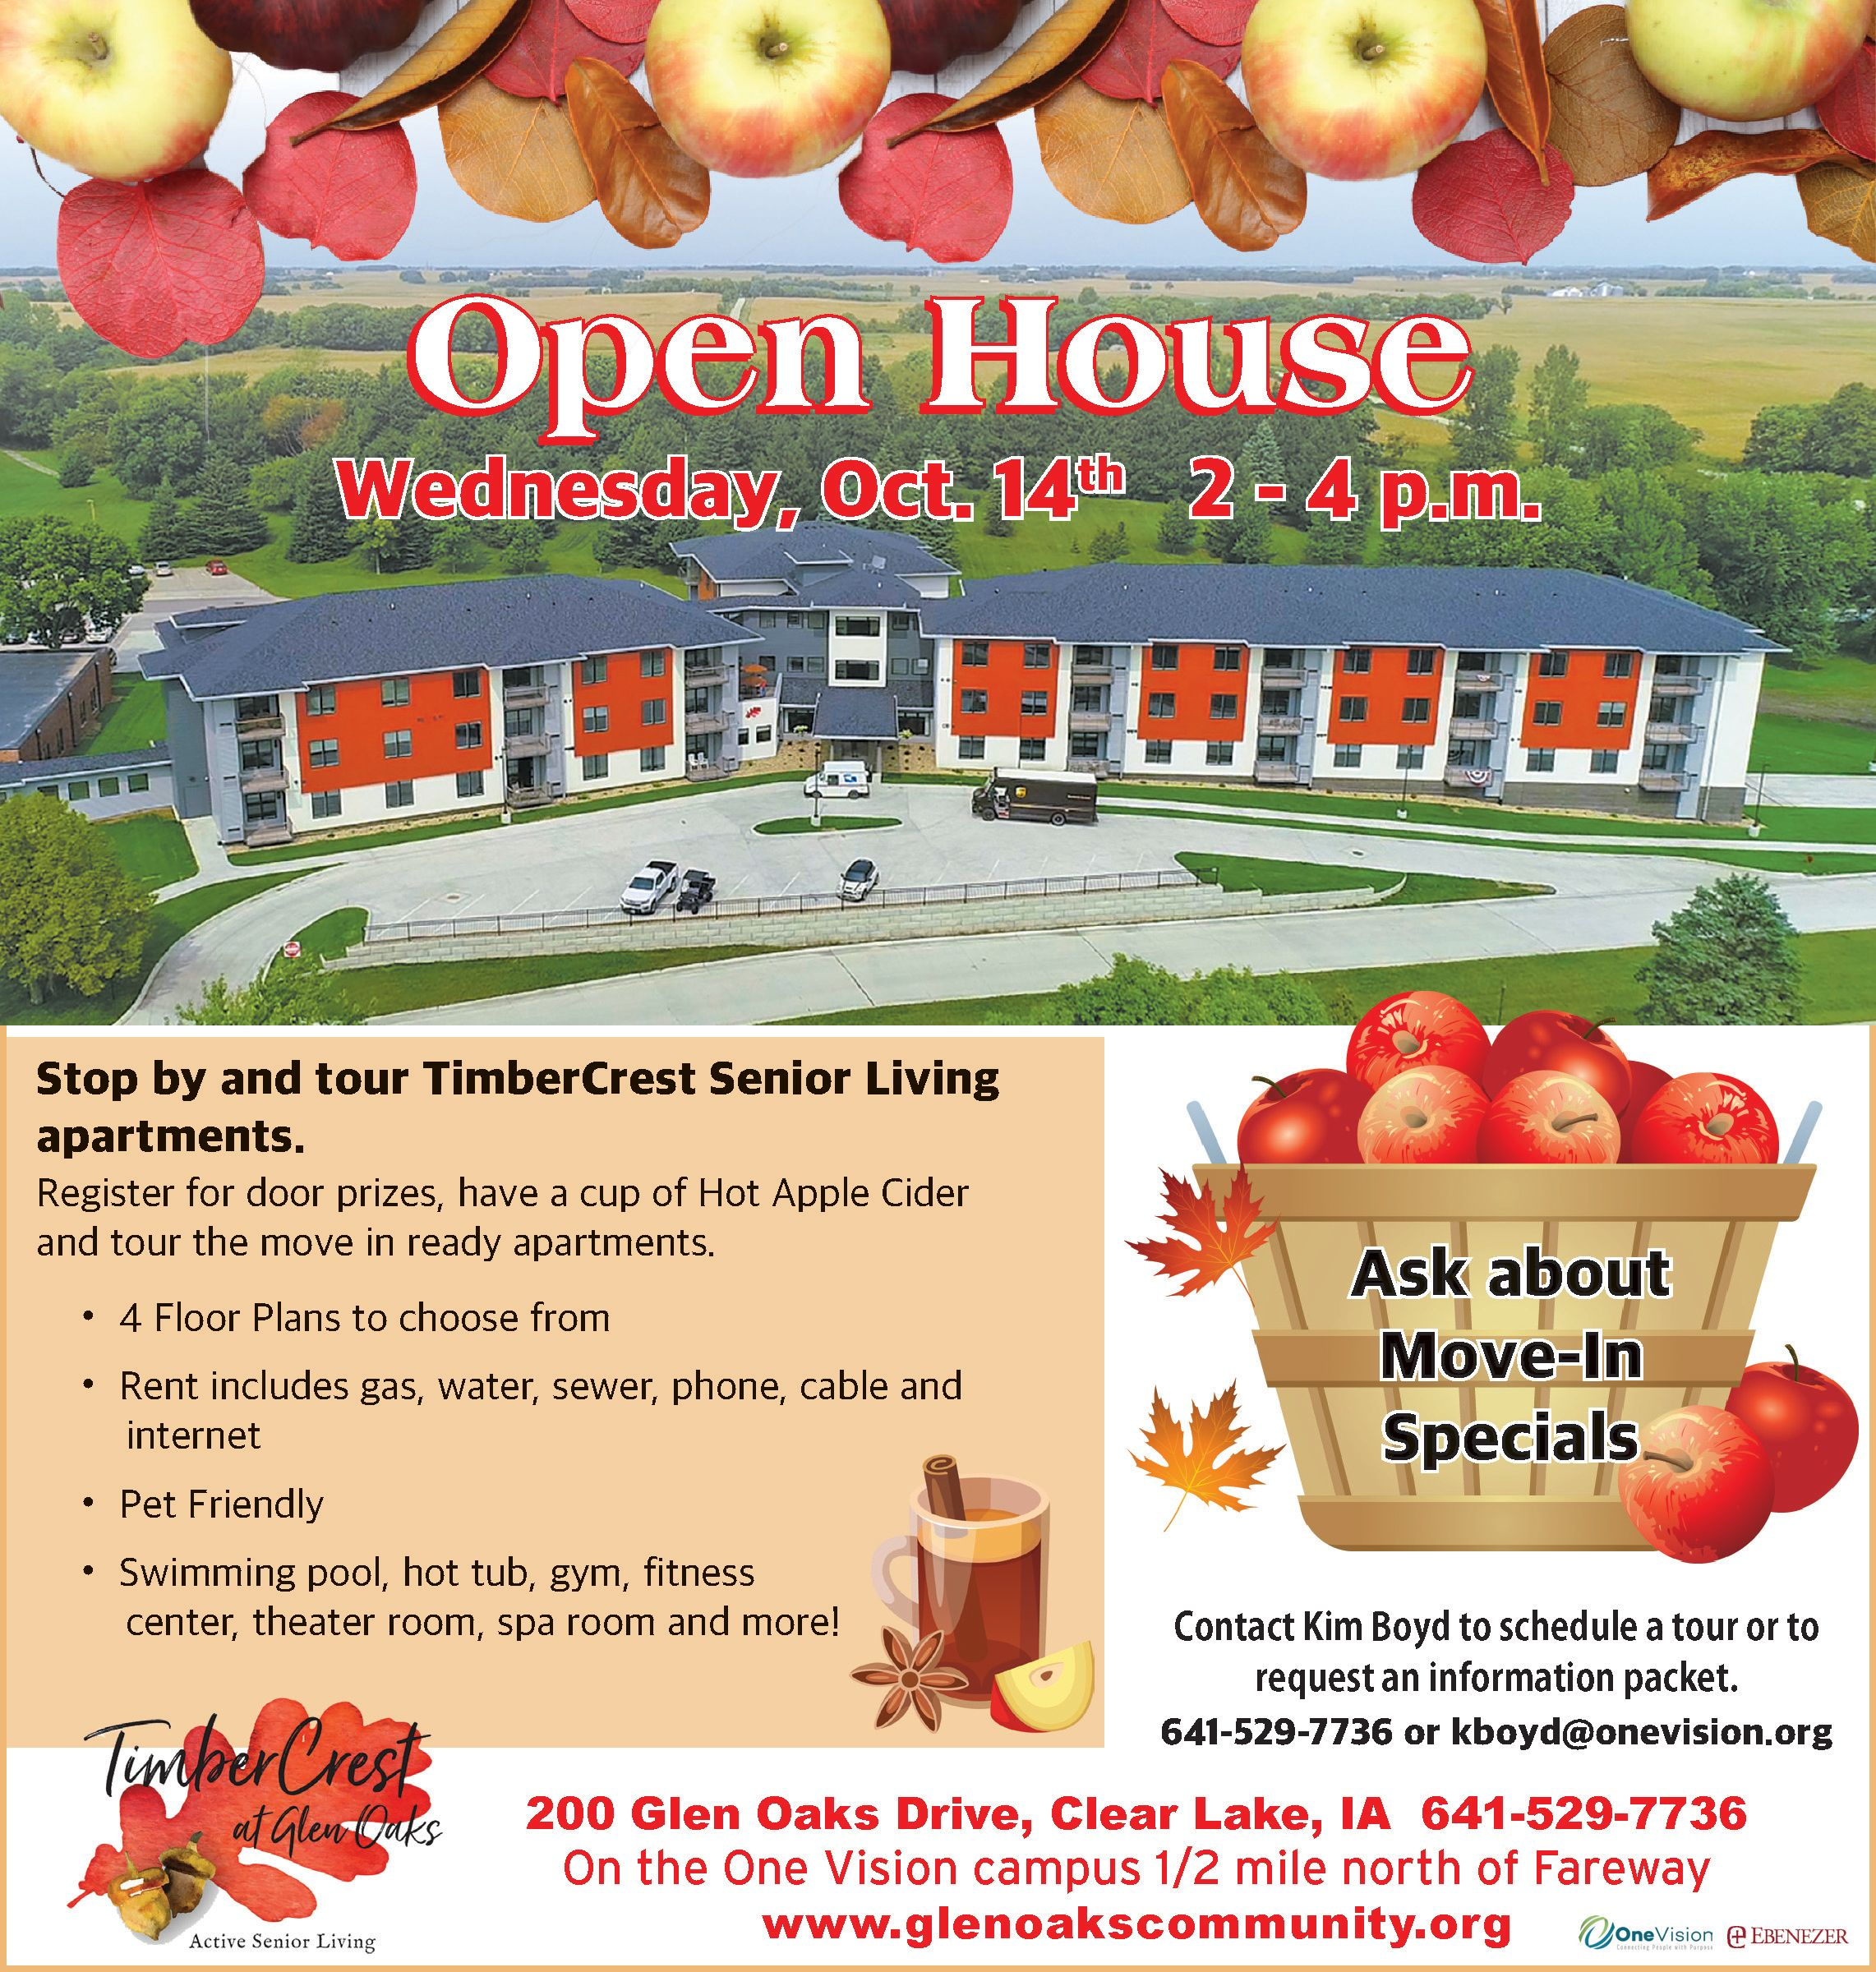 Glen Oaks Community – TimberCrest Apartments and Terrace Townhomes Open House